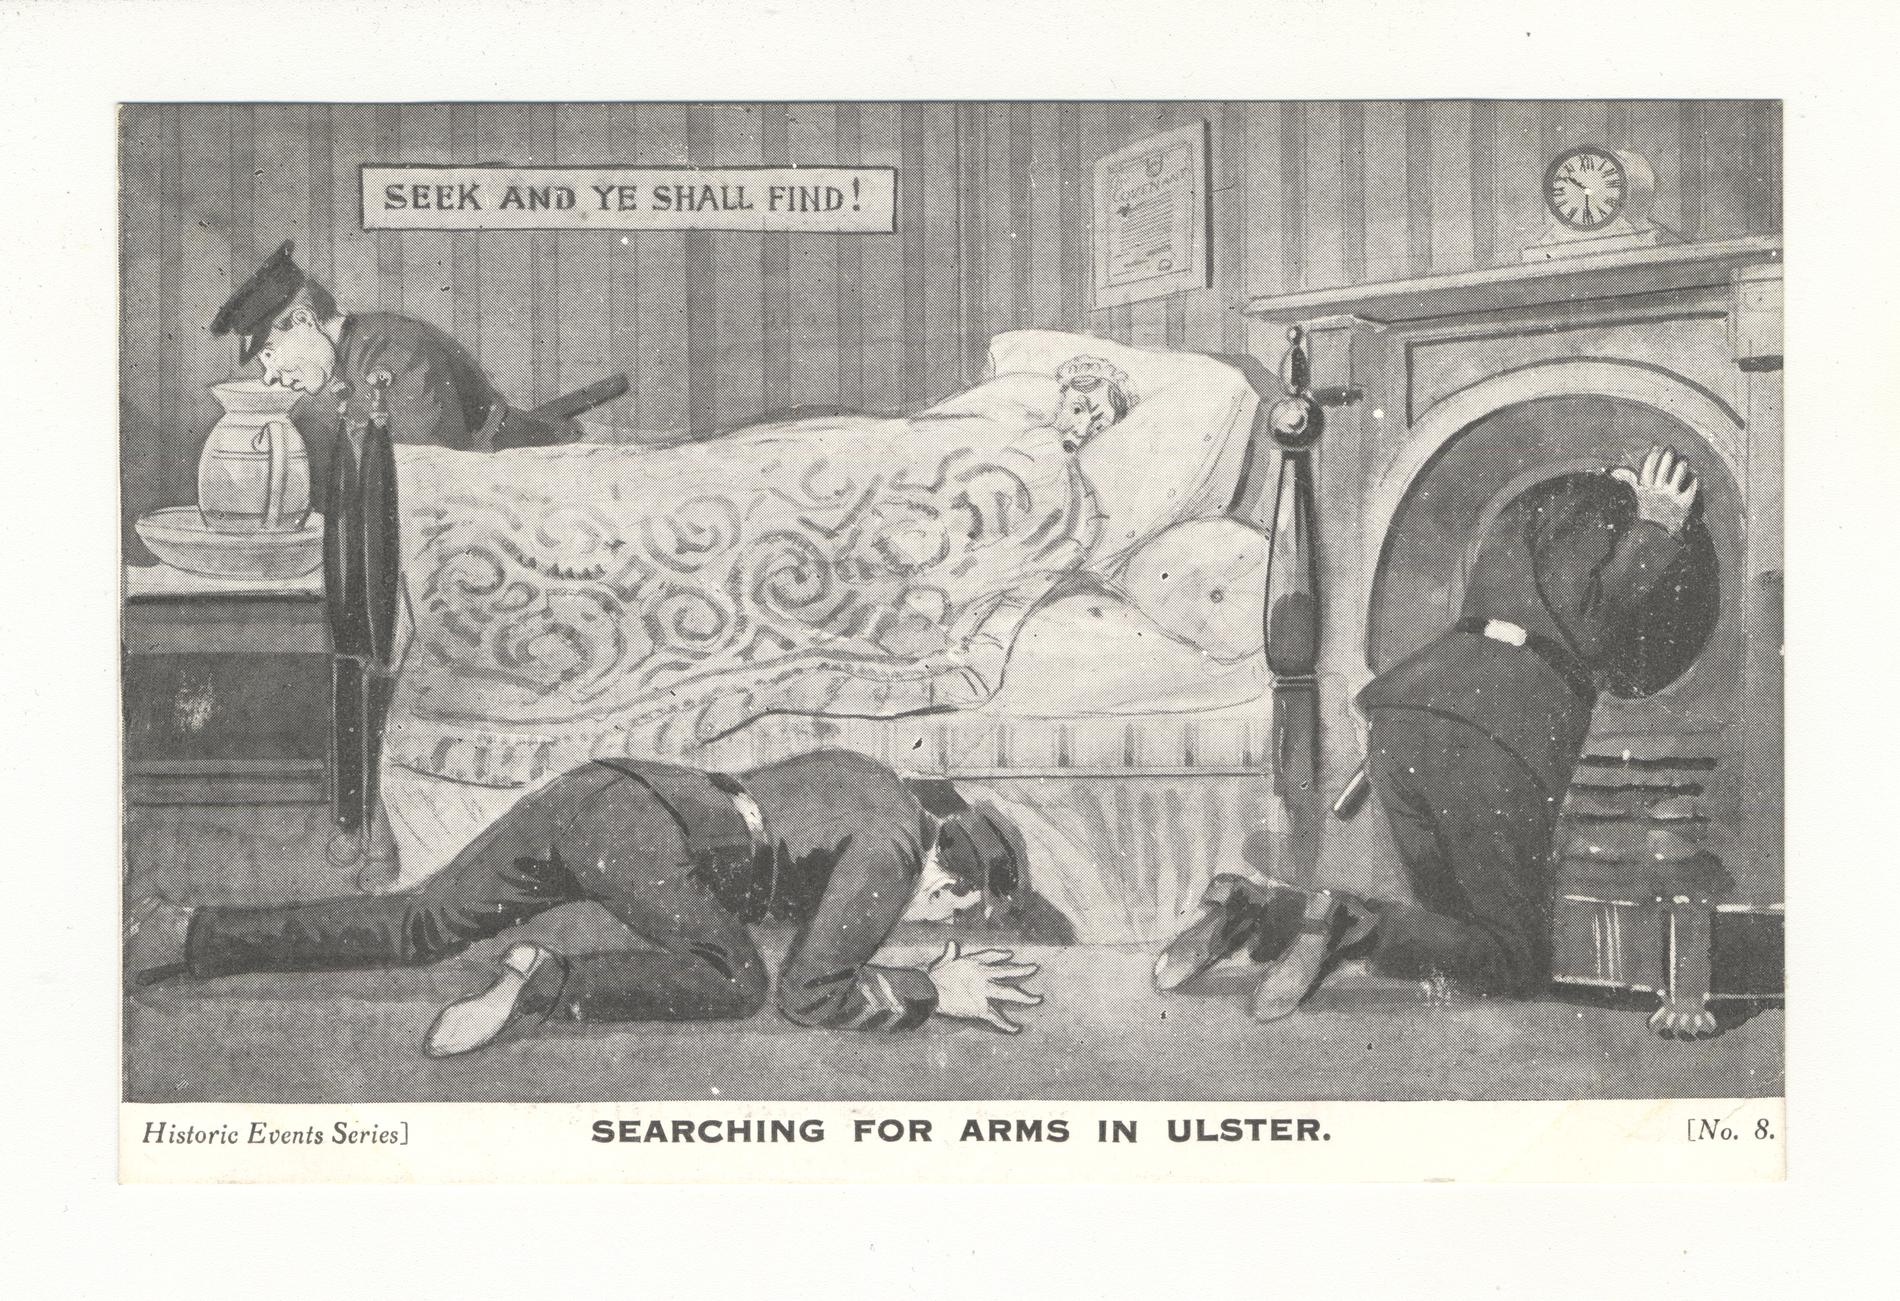 Searching for Arms in Ulster (Postcard)